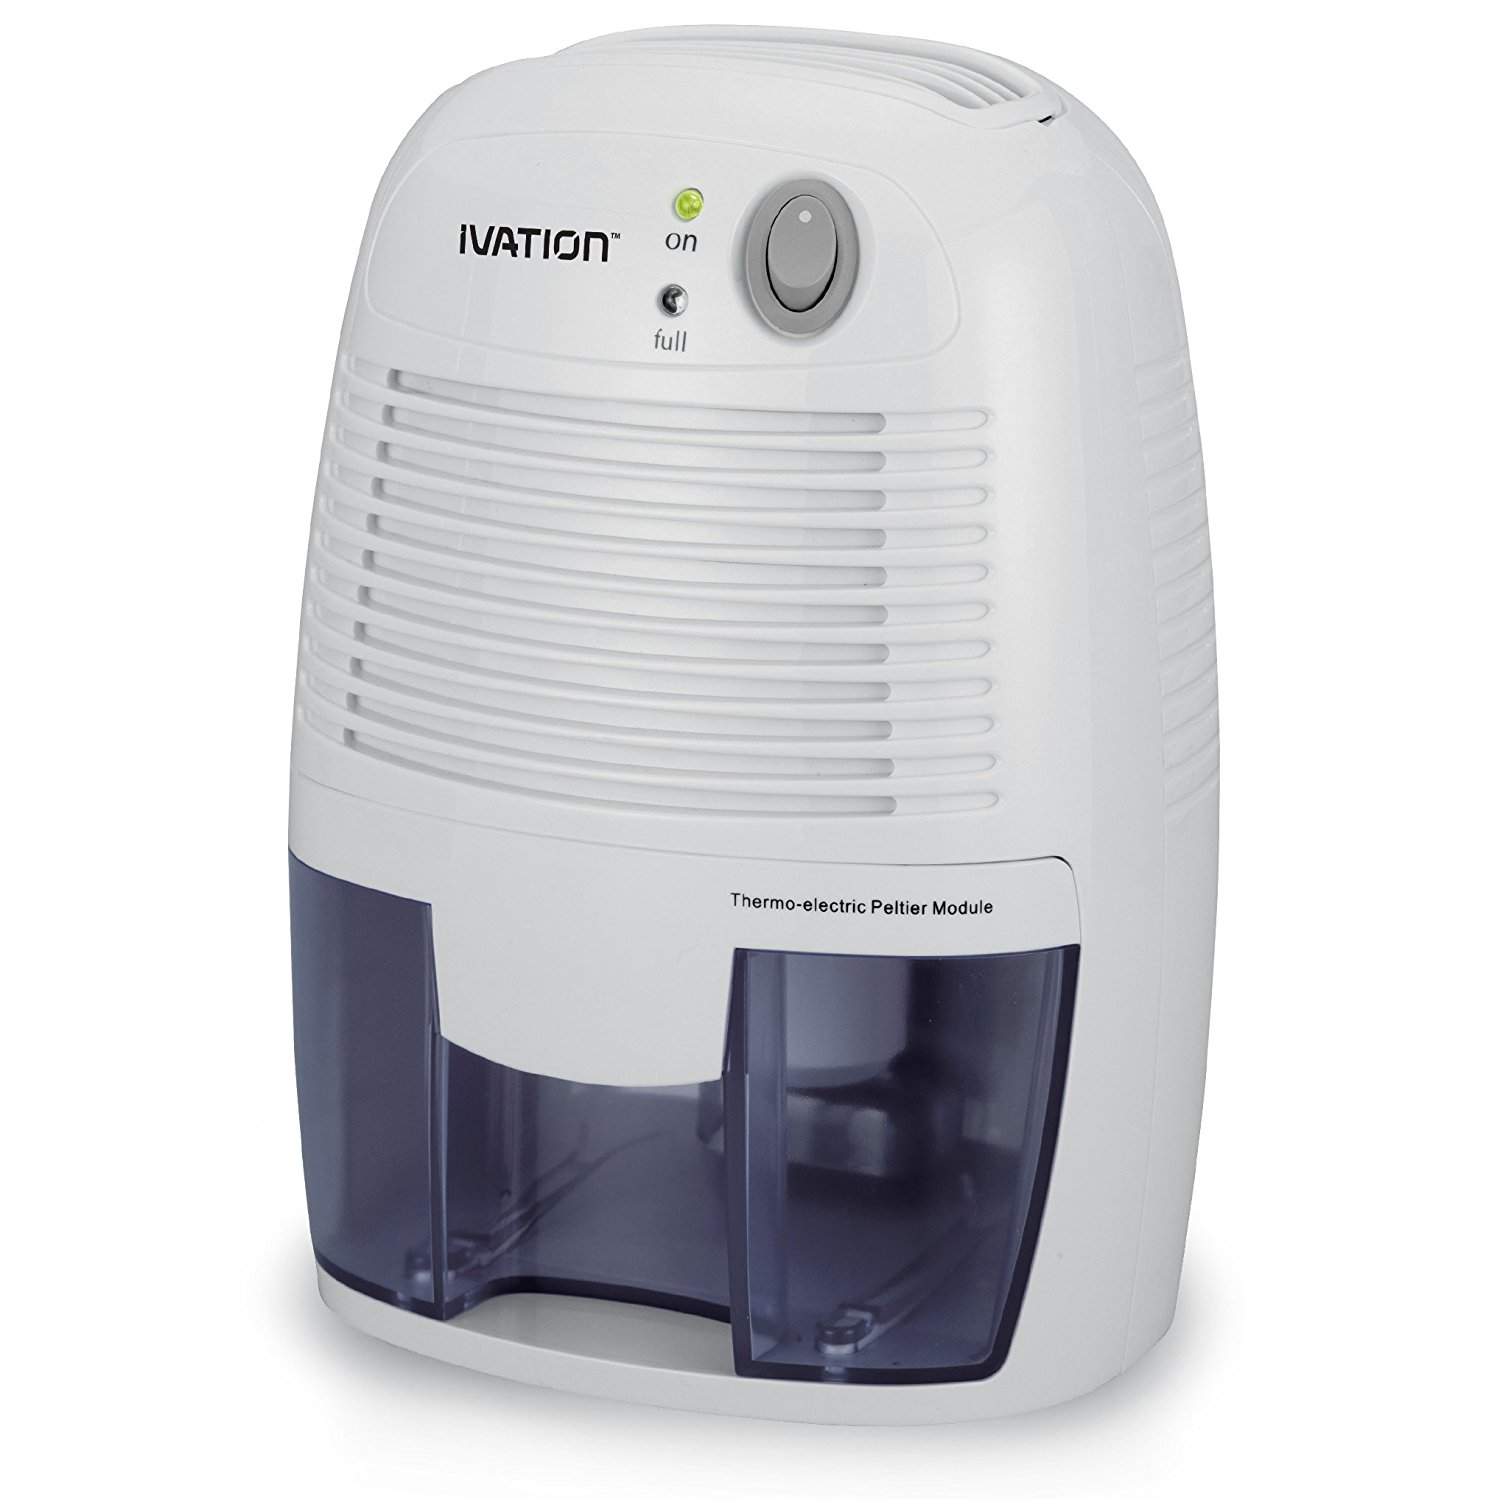 Small bathroom dehumidifier Ivation IVAGDM20